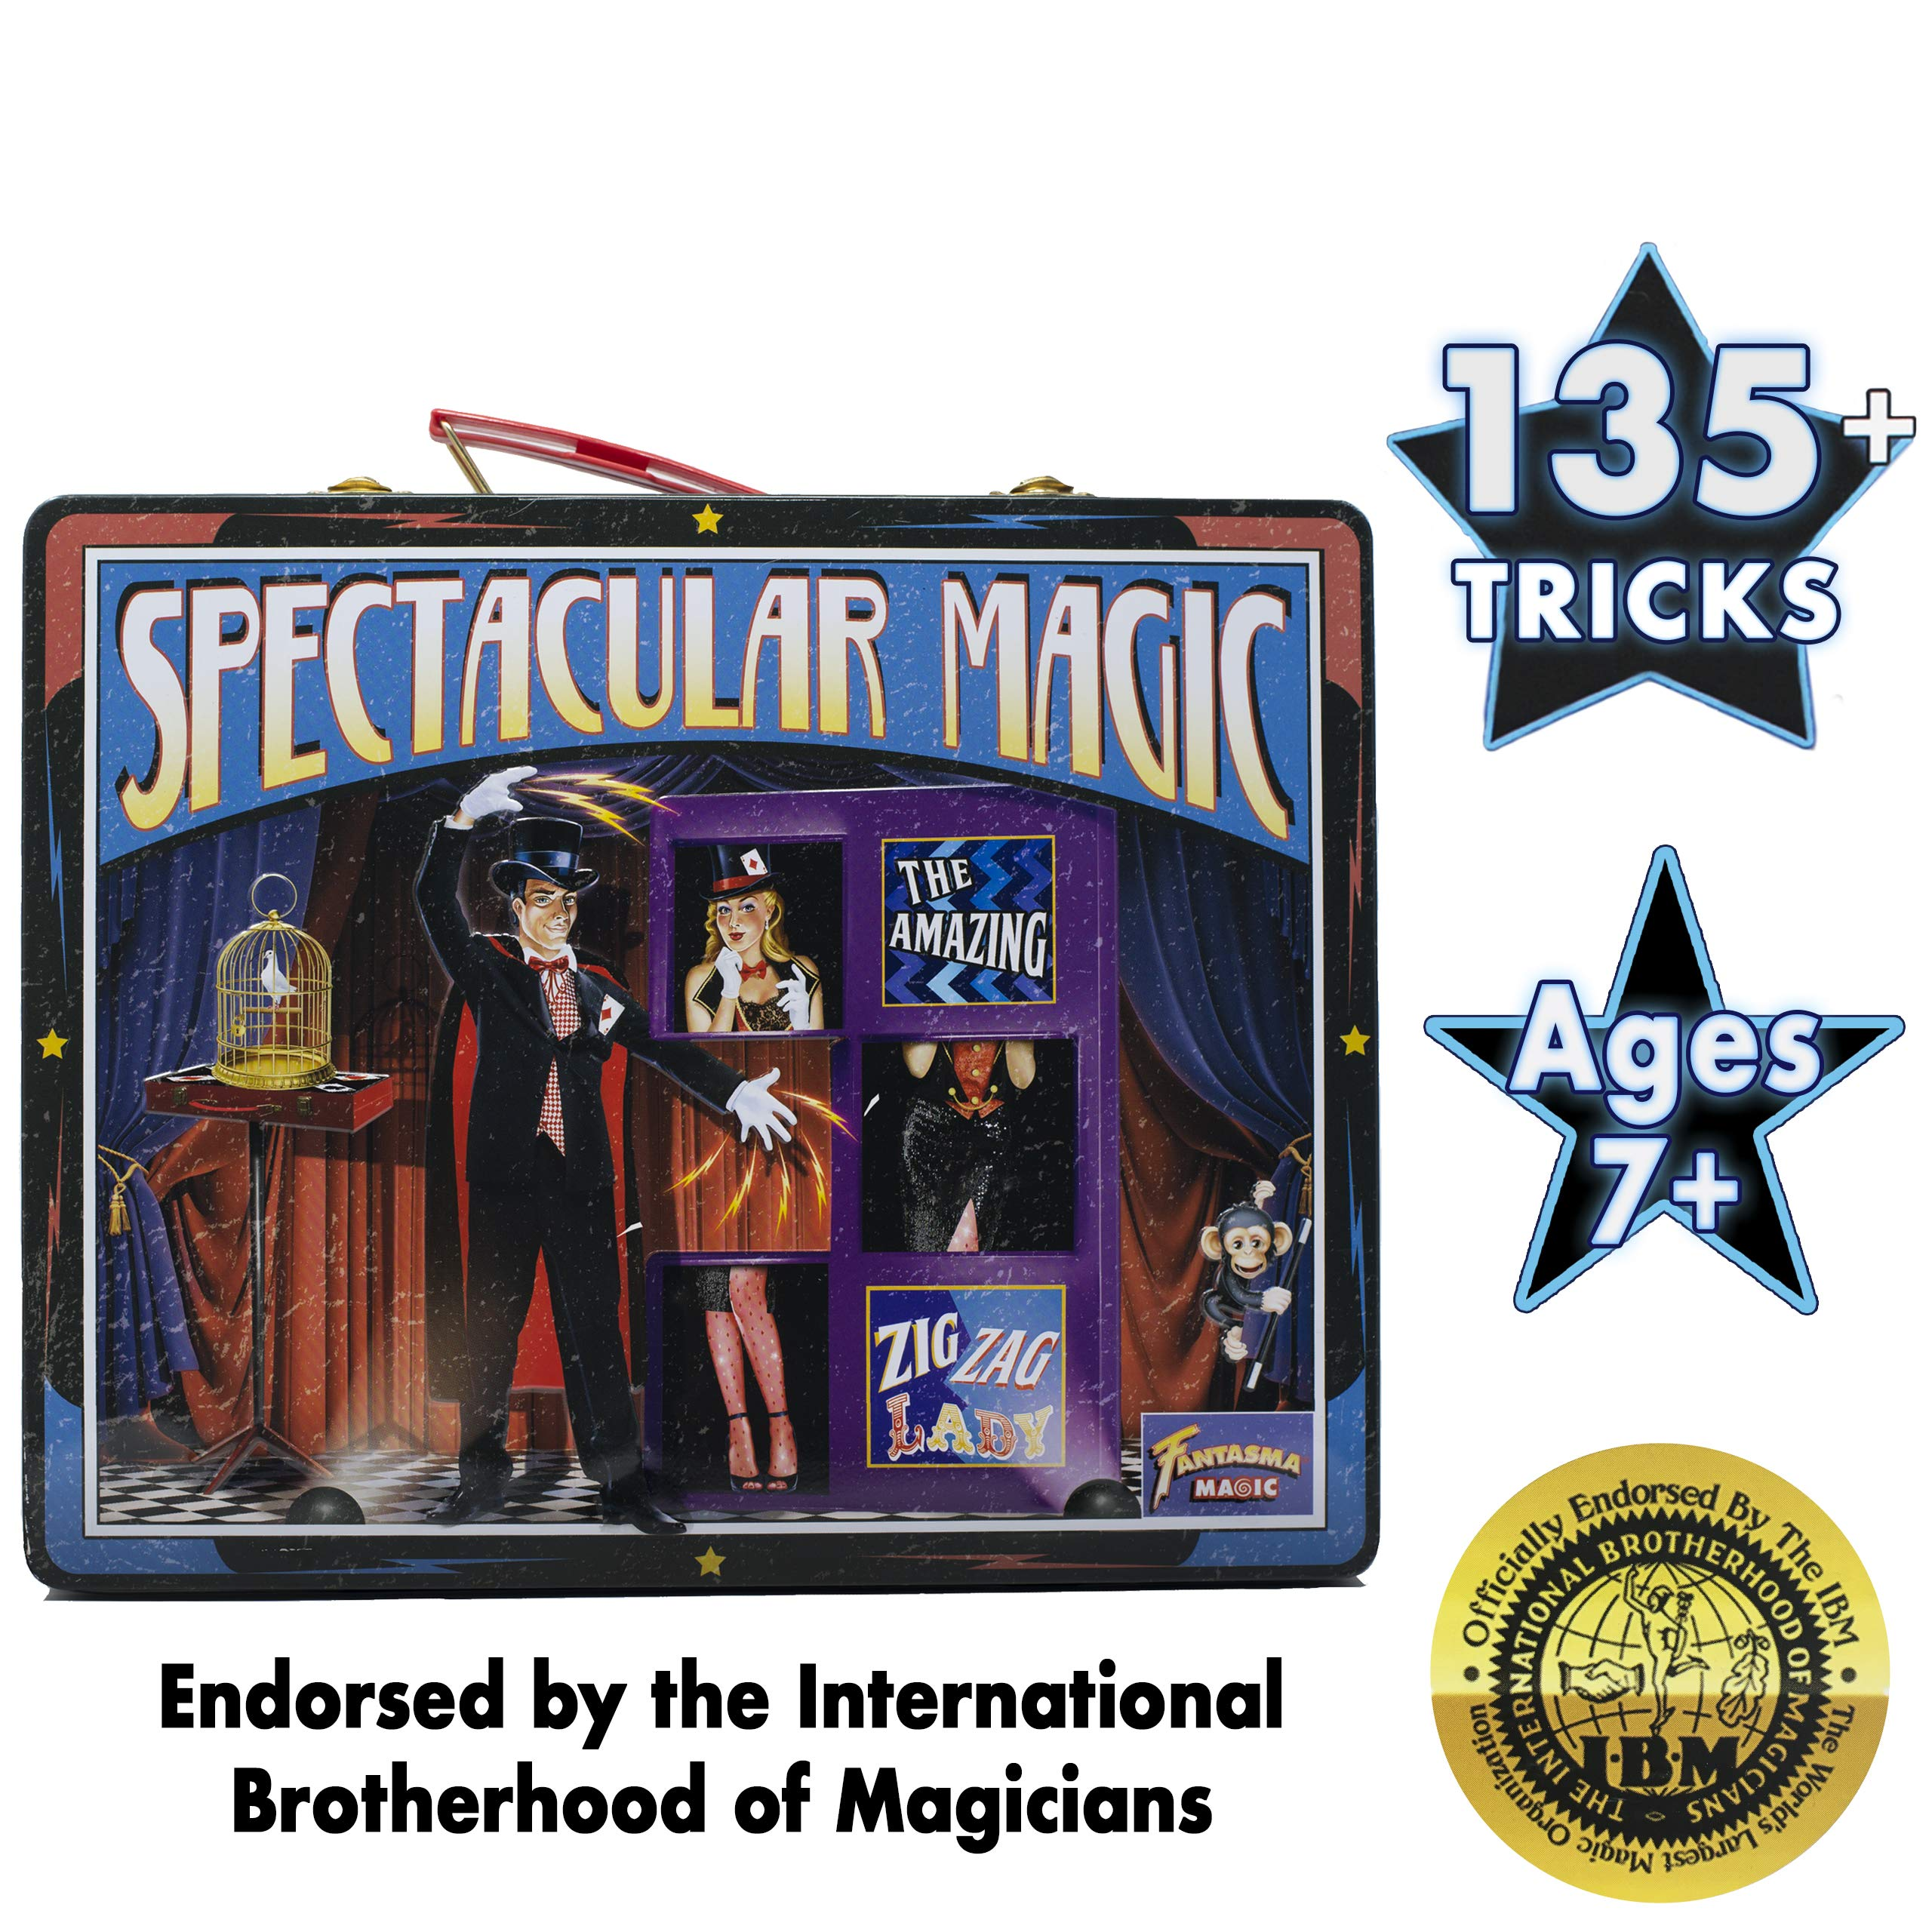 Fantasma Spectacular Magic Box Set for Kids - Magic Kit and Card Trick - Learn 135 Magic Tricks - Great for Boys and Girls 7 Years and Older        by Fantasma (Image #5)